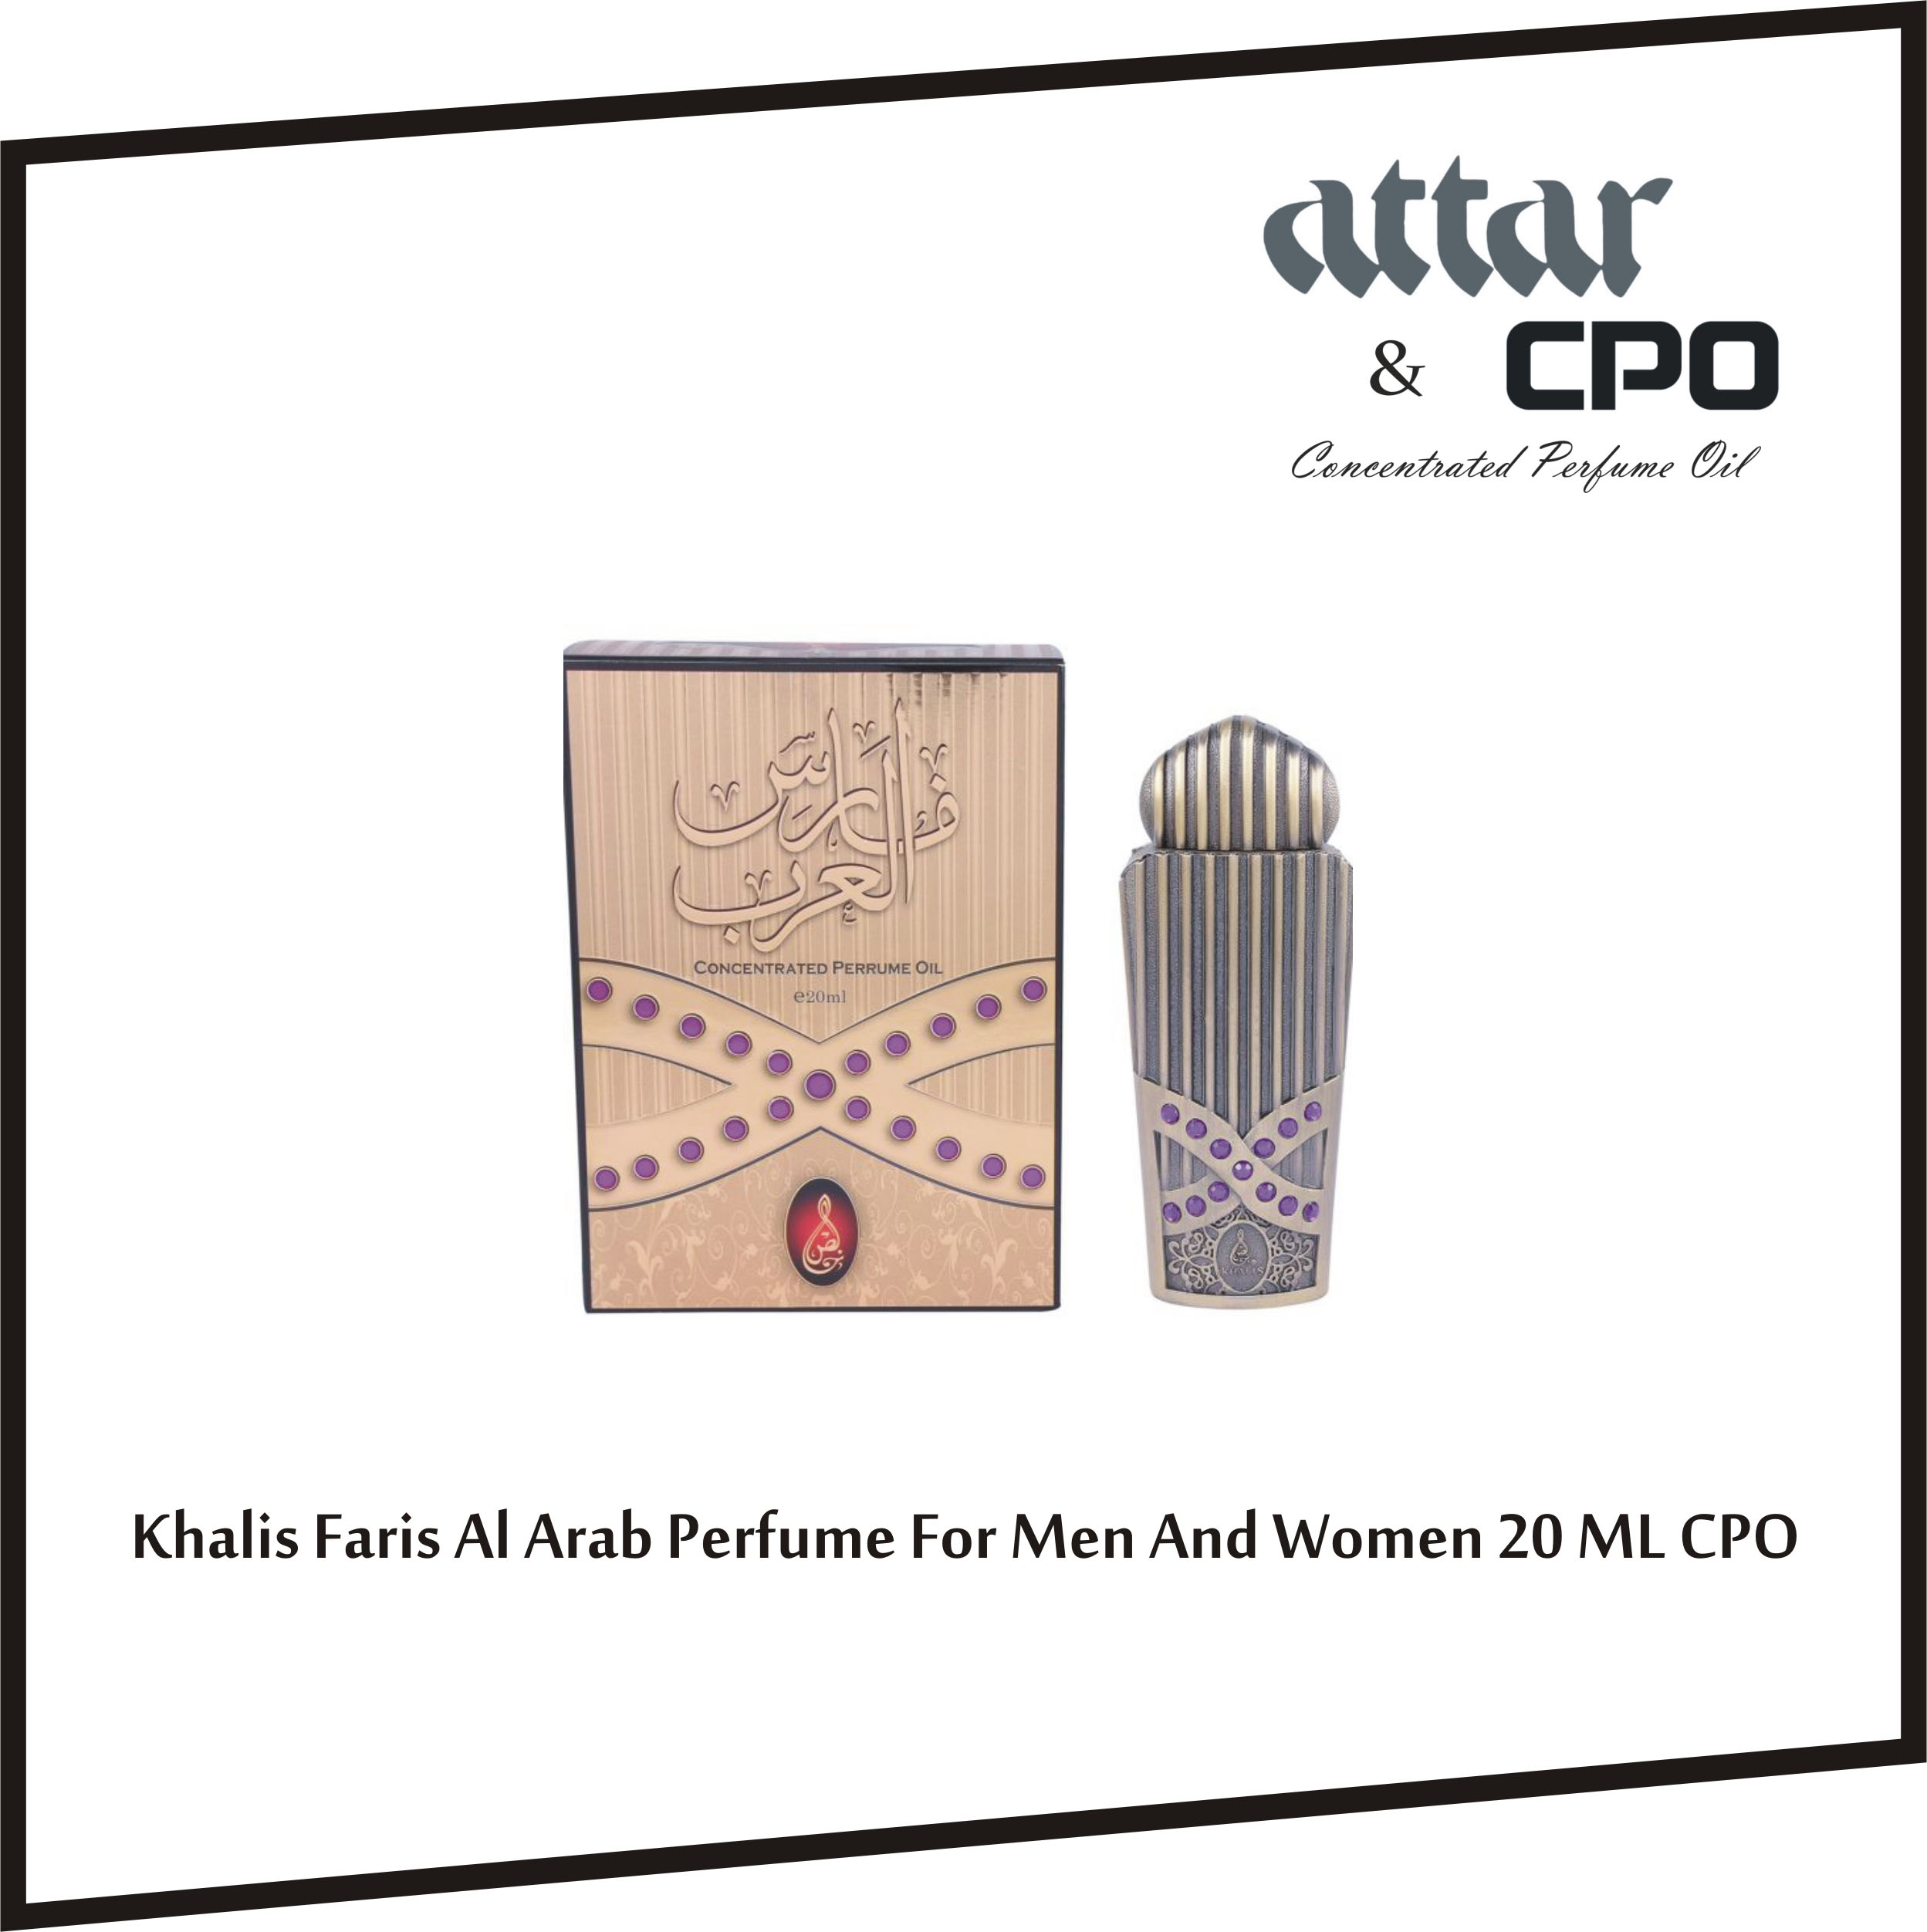 khalis-faris-al-arab-perfume-for-men-and-women